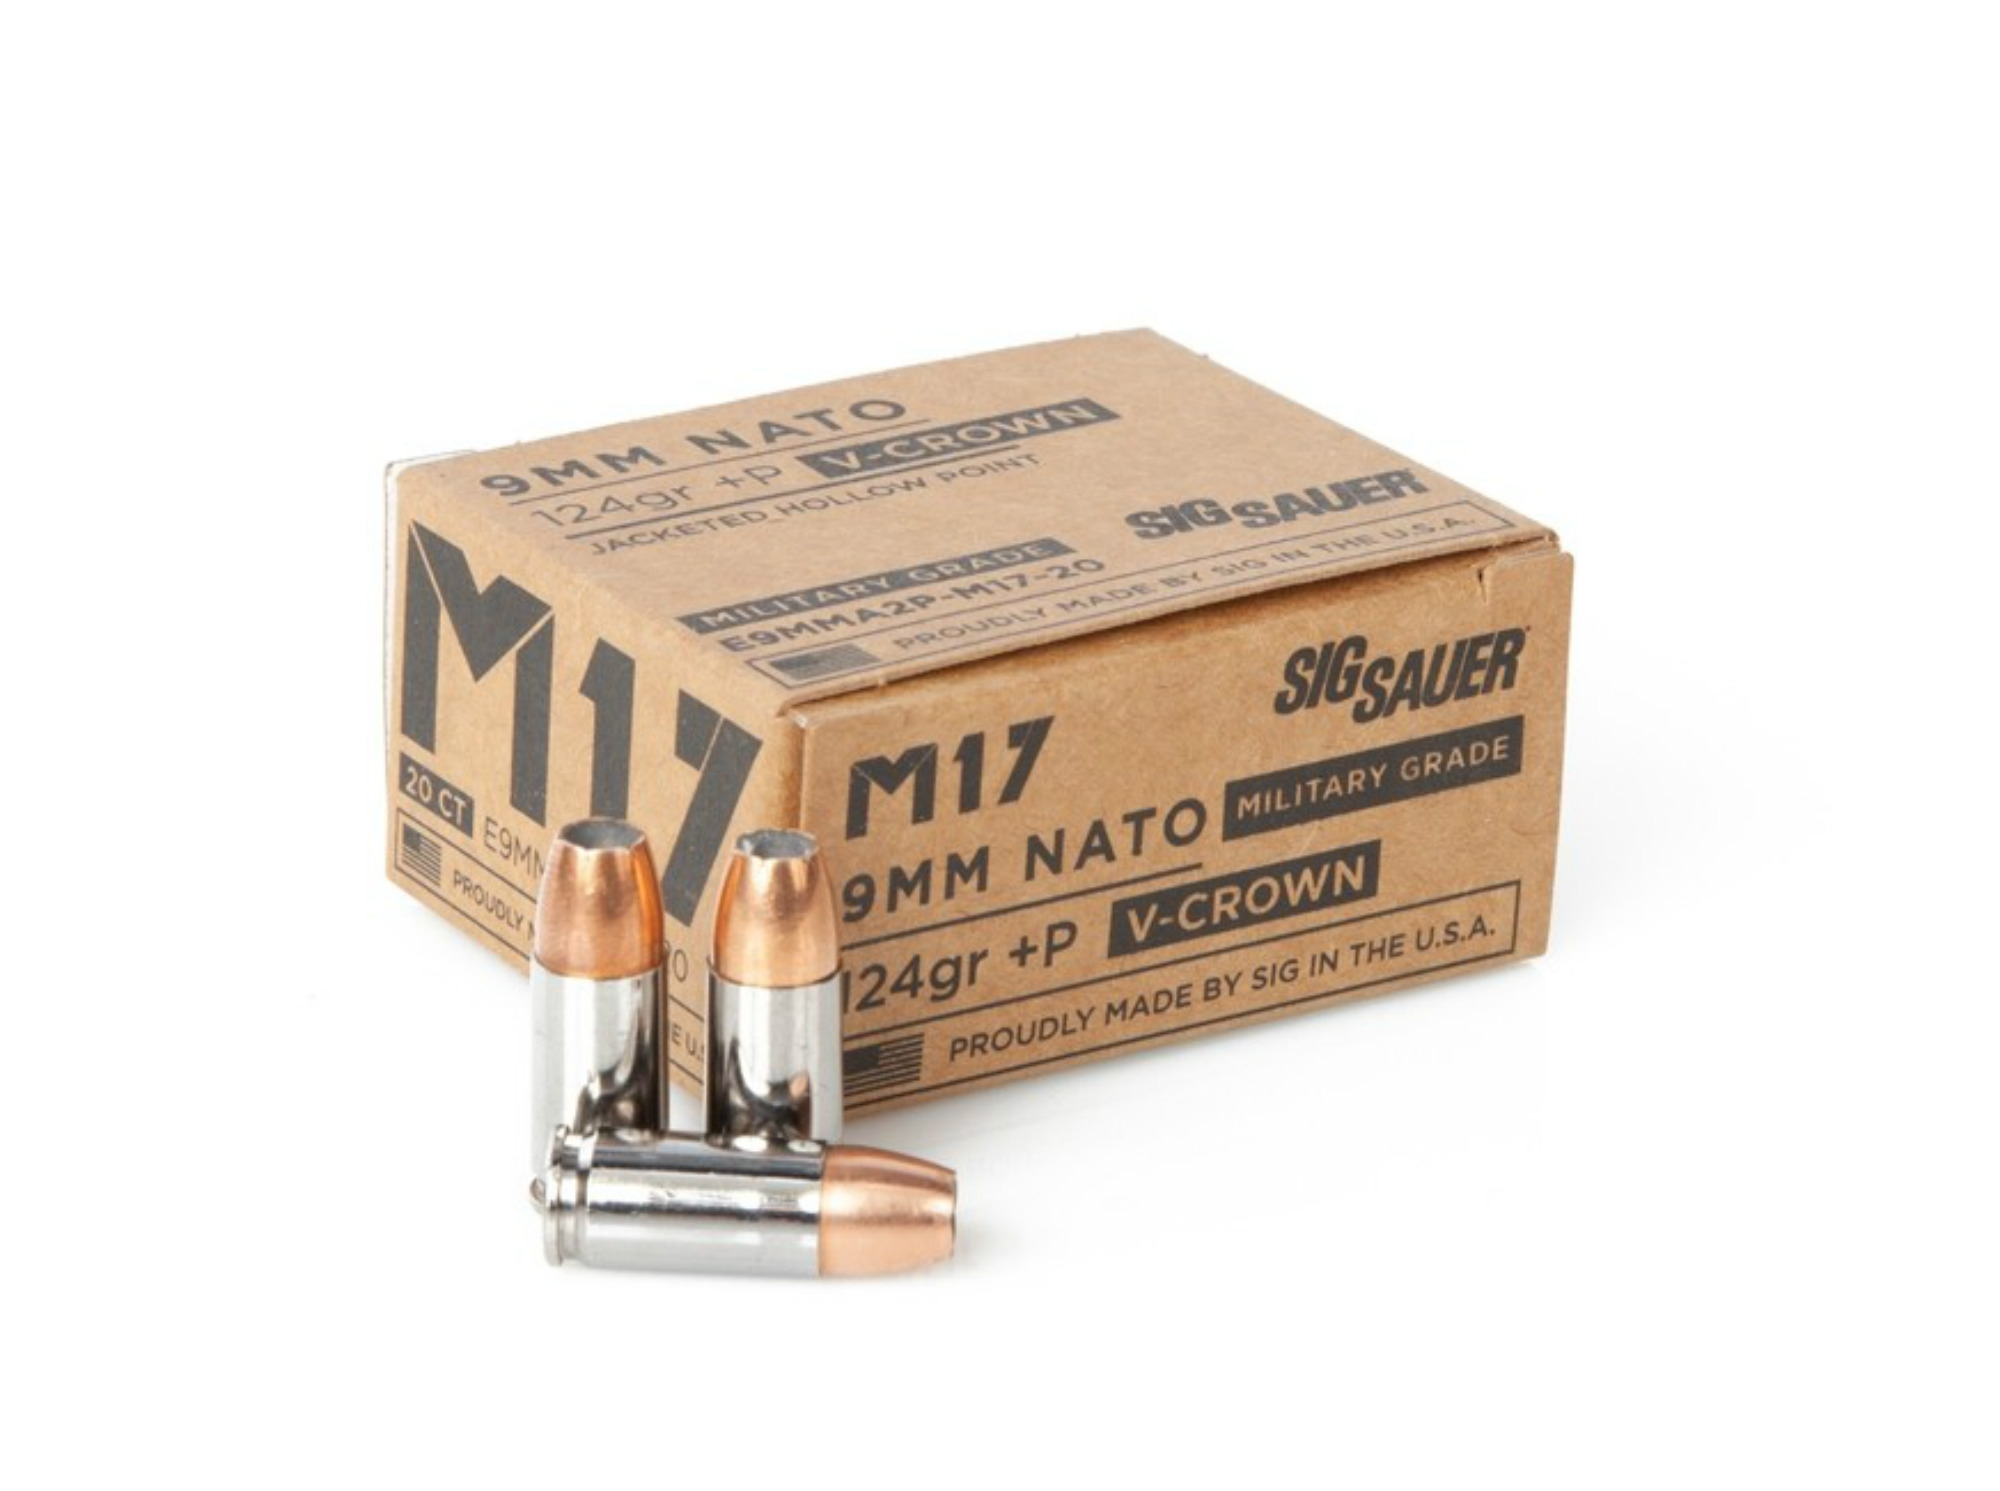 M17 124gr SIG Elite V-Crown Jacketed Hollow Point (JHP)